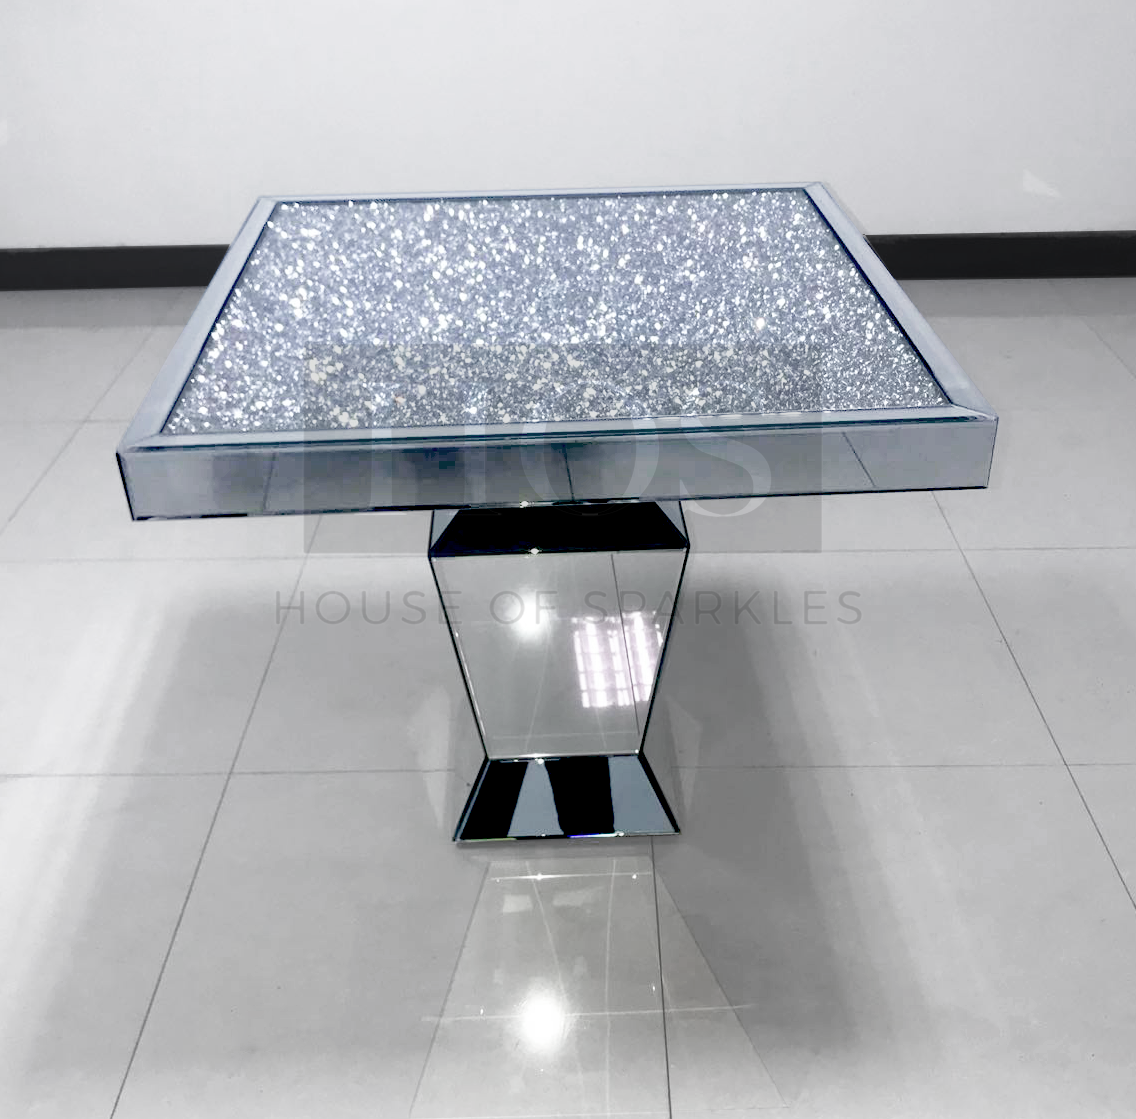 diamond crush mirrored dining table future place accent furniture sparkle house sparkles occasional bedroom chairs sofa for small space living room light colored wood end tables